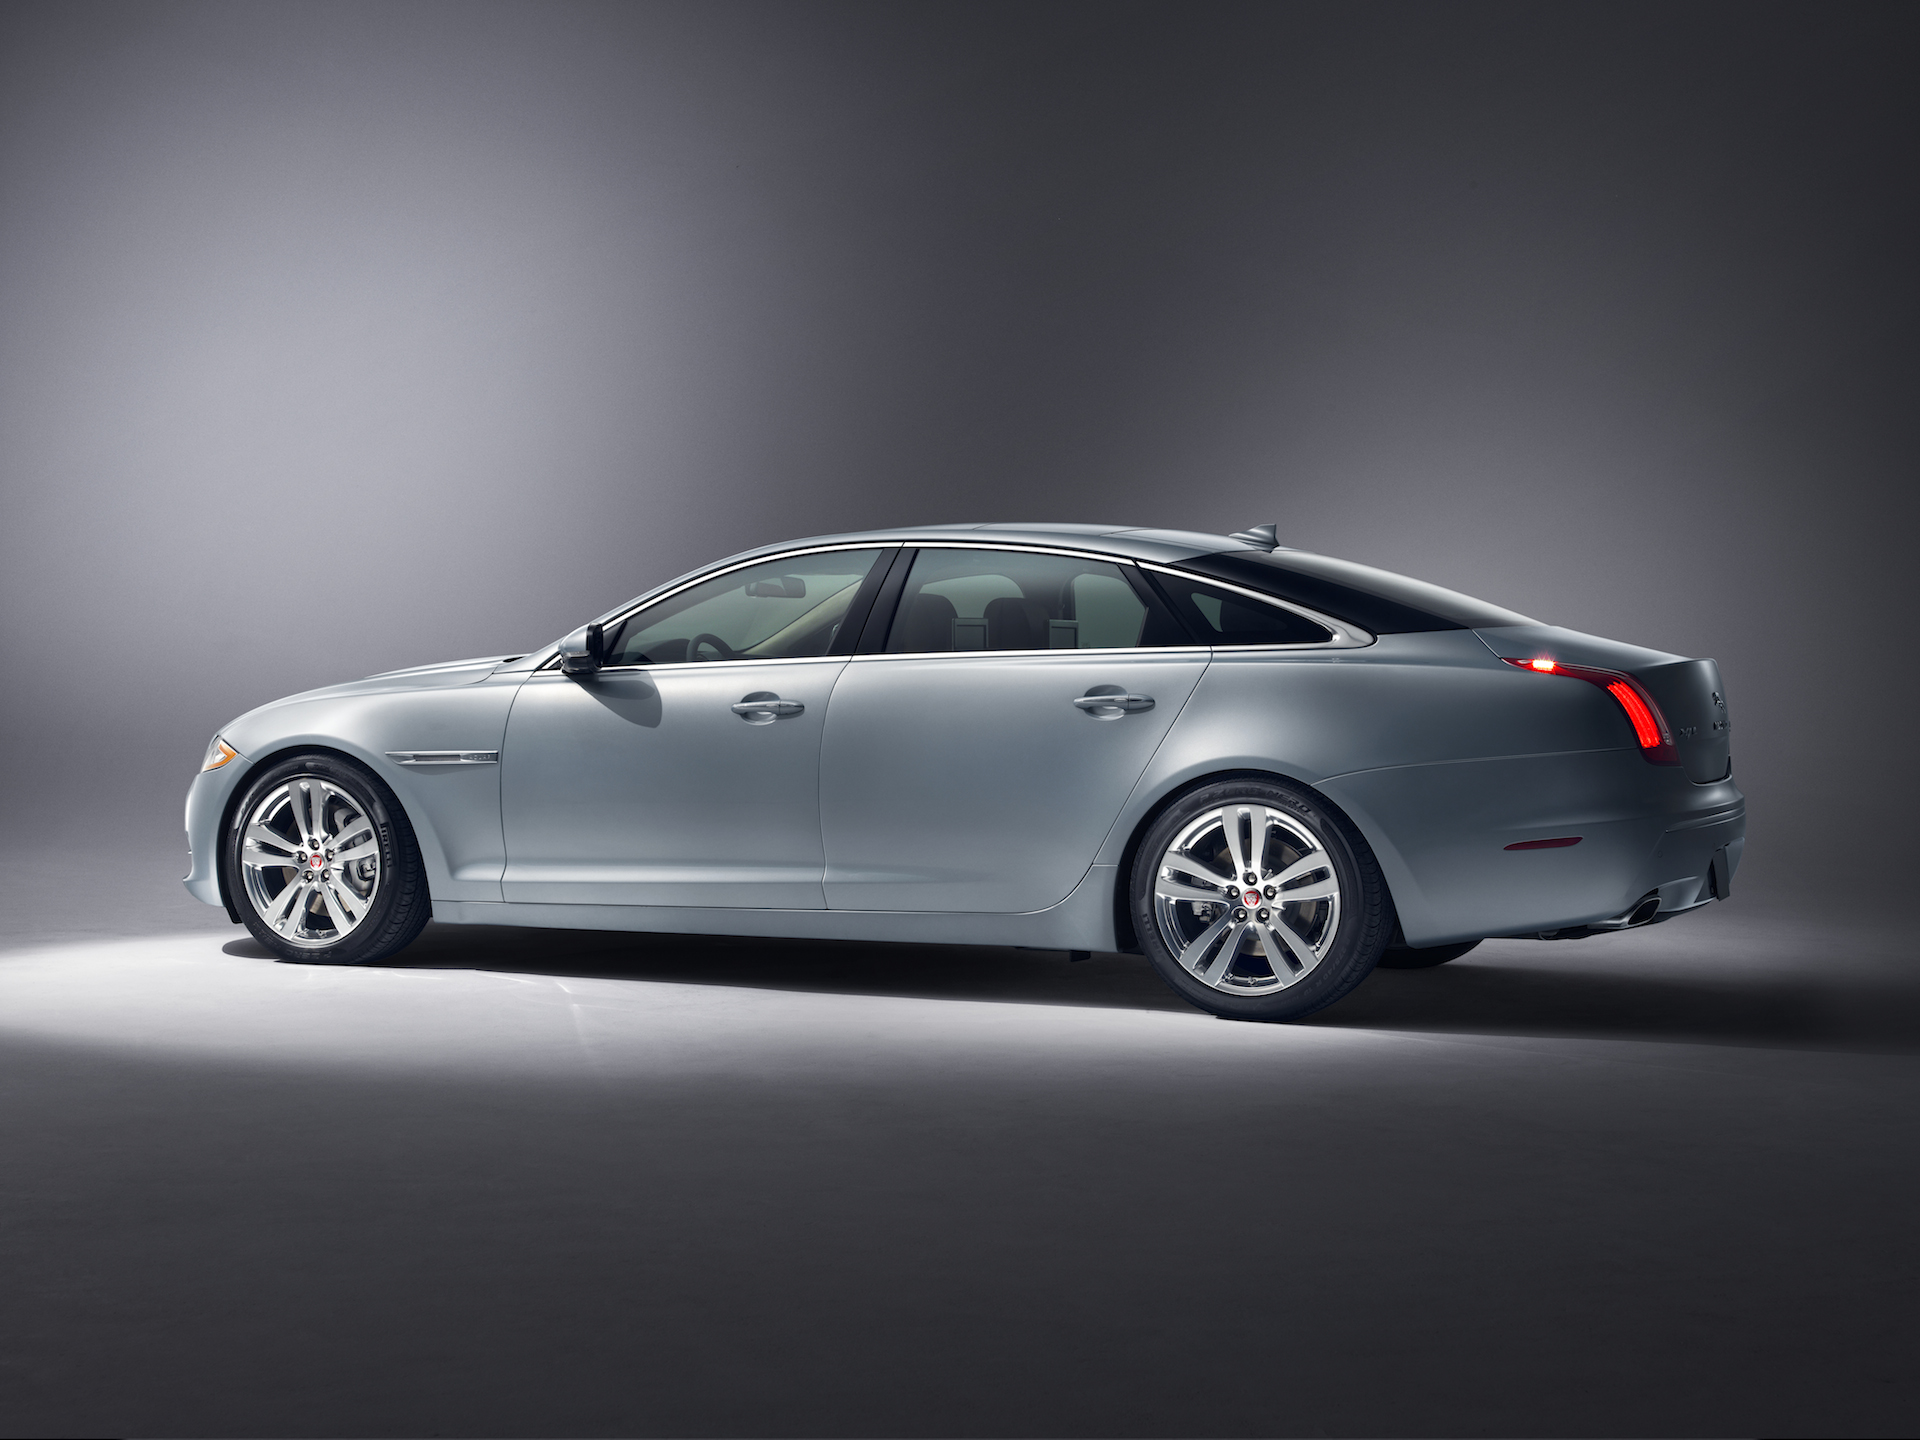 2015 jaguar xj review ratings specs prices and photos the car connection. Black Bedroom Furniture Sets. Home Design Ideas